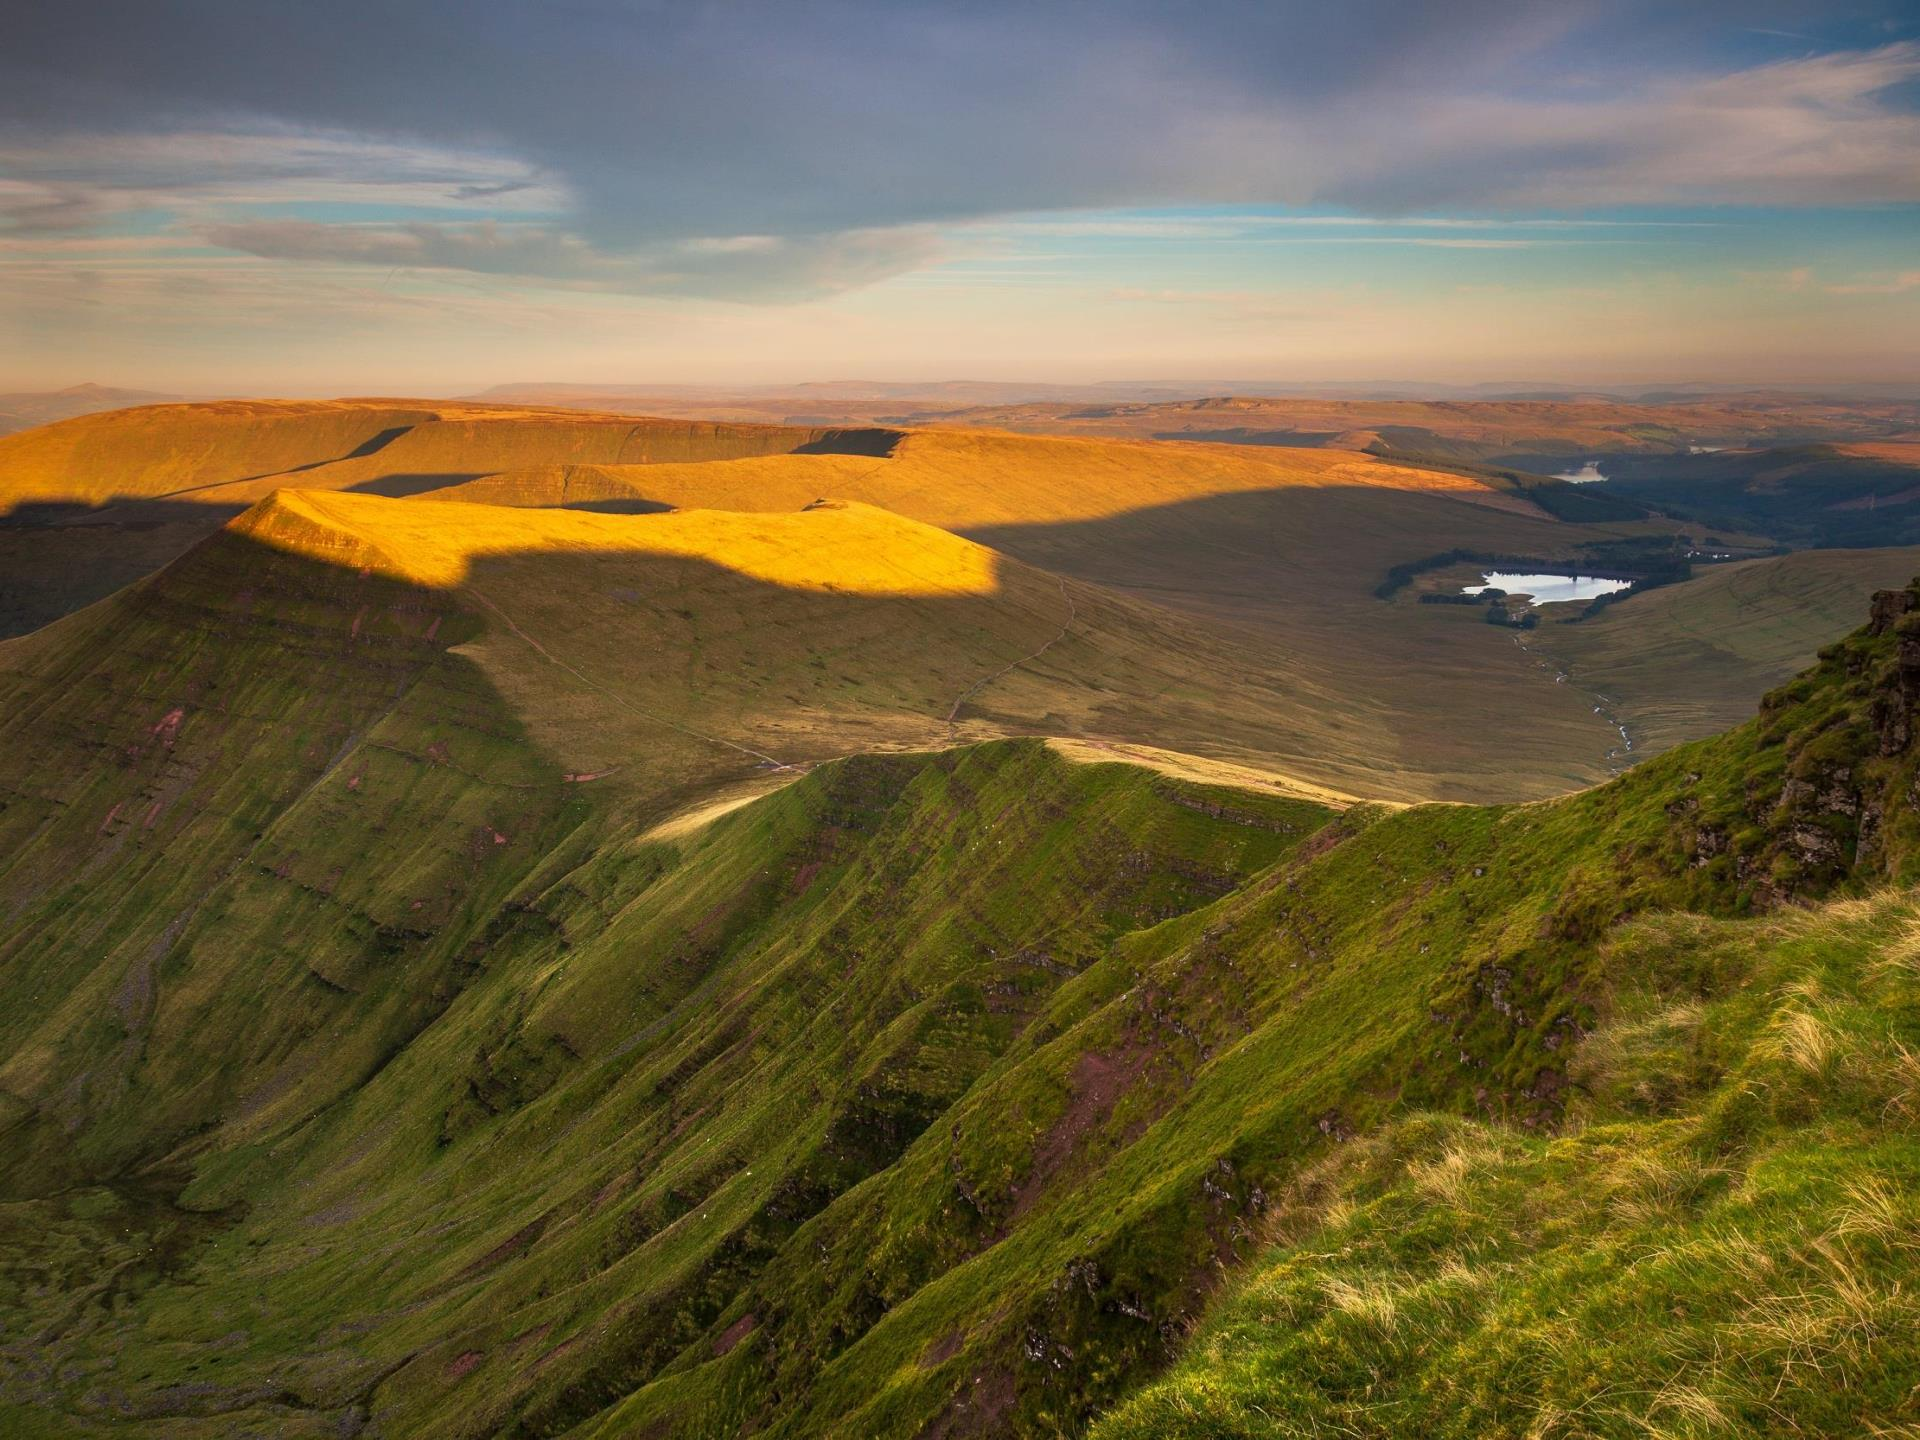 The Brecon Beacons mountain range